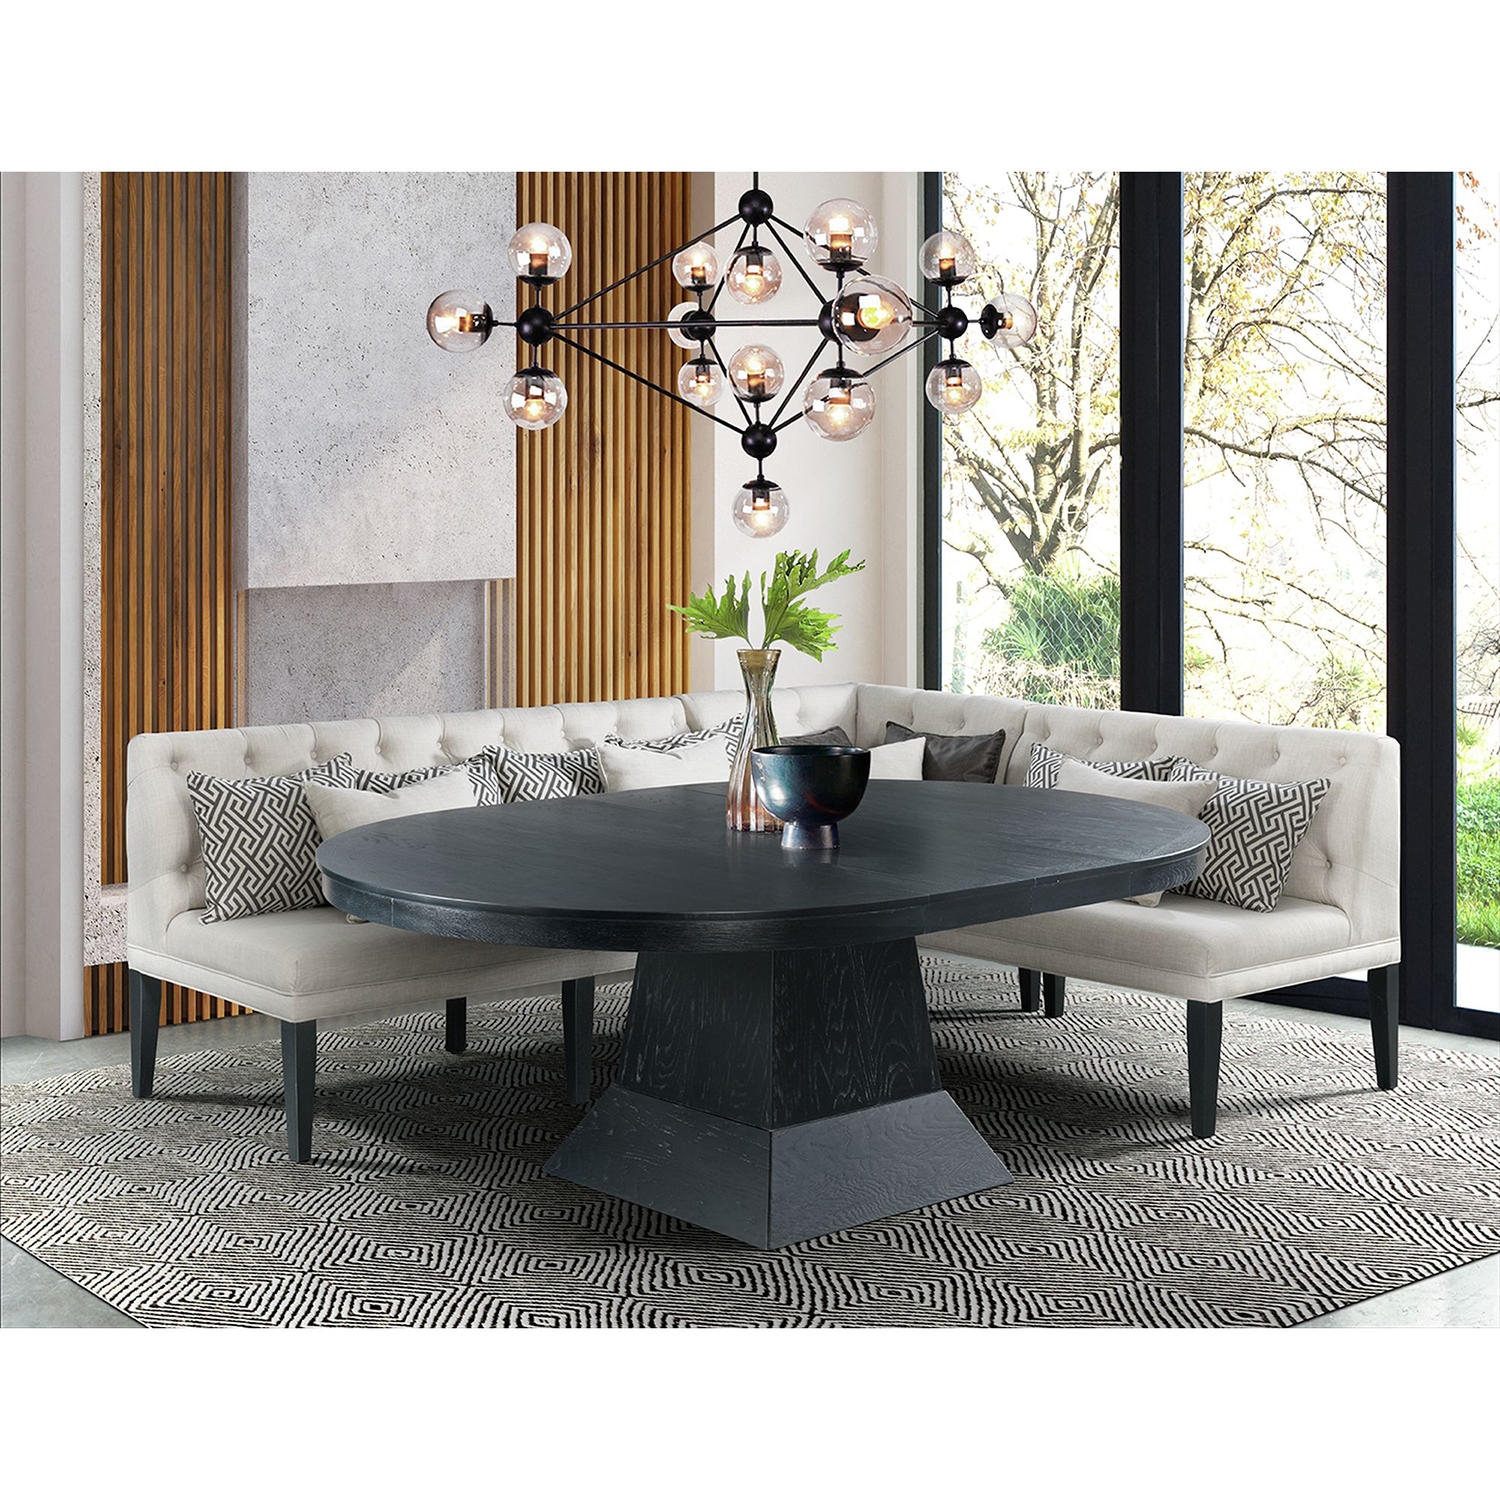 Society Den Mara 4-Piece Oval Dining Table Set